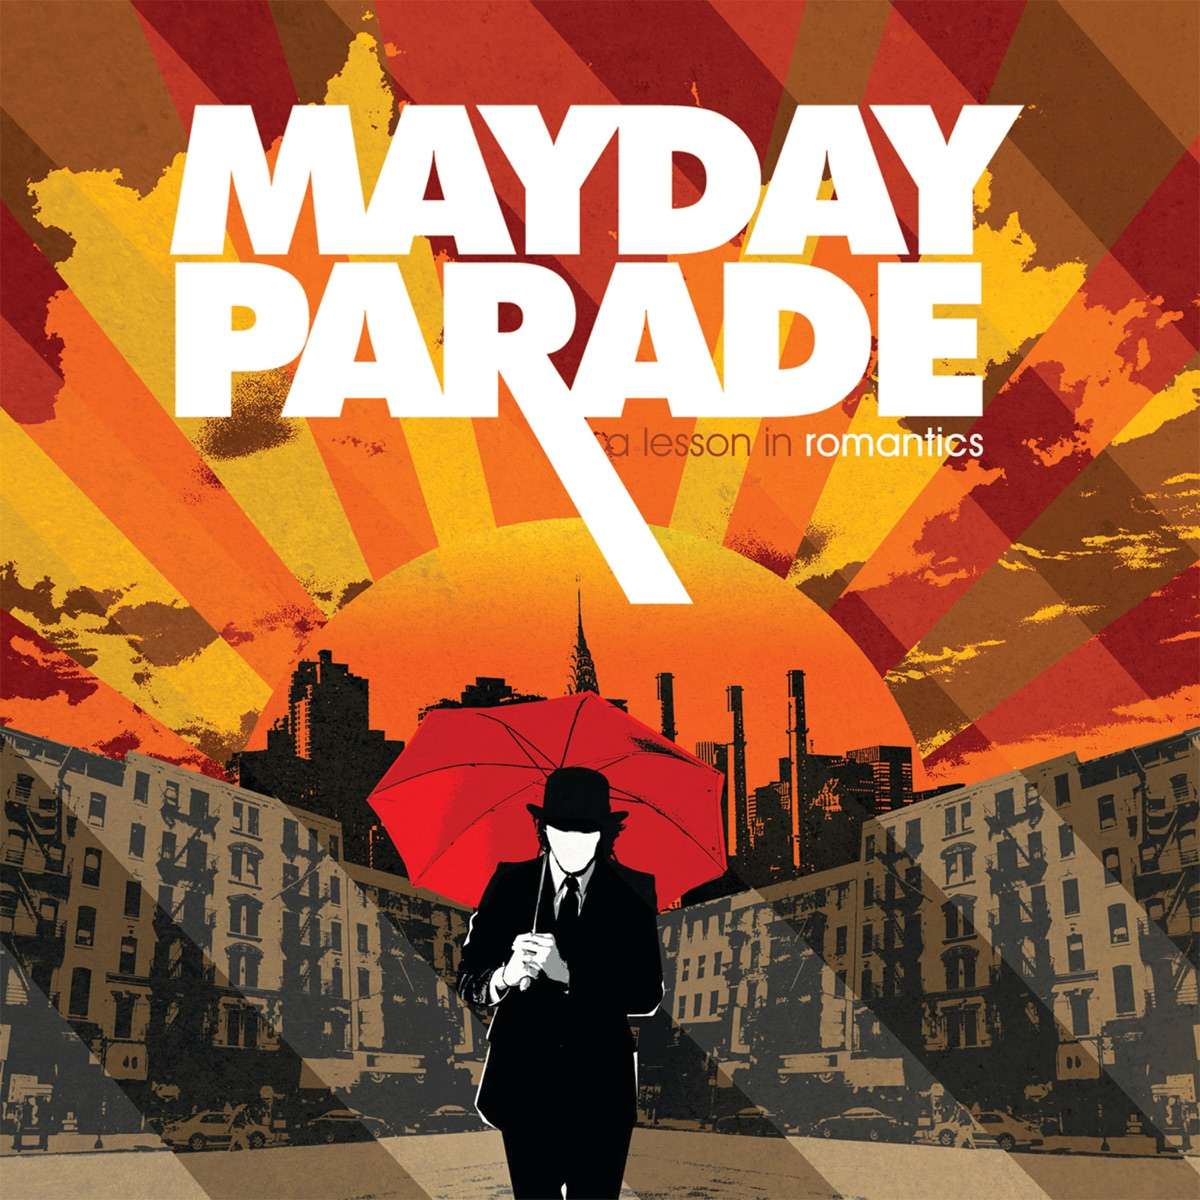 A Lesson in Romantics Mayday Parade CD cover